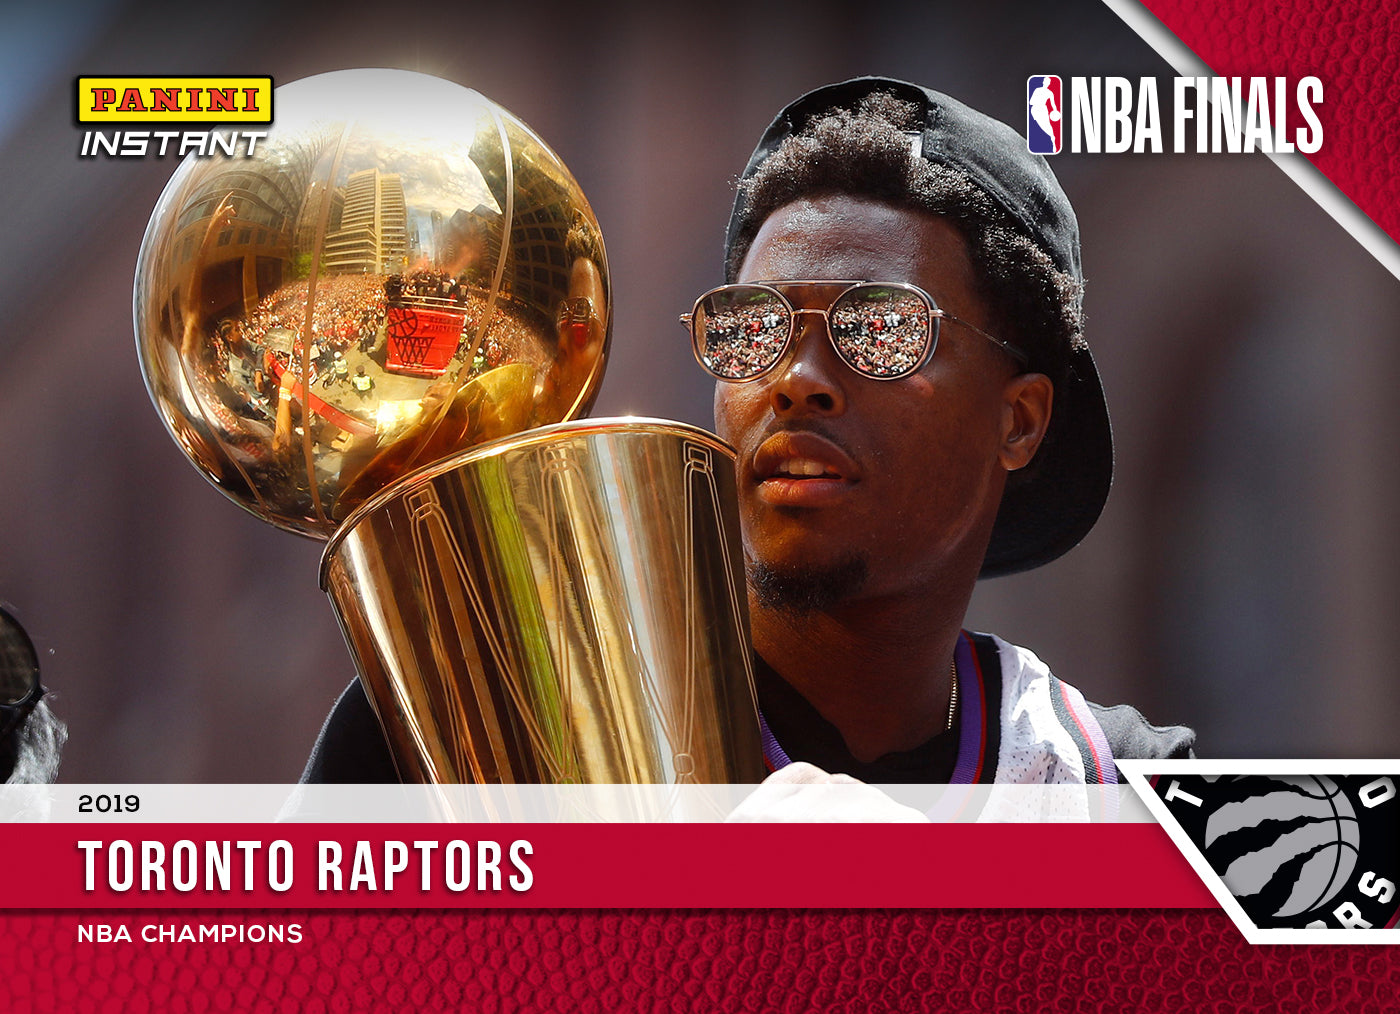 30 Team Raptors 2019 Panini Card Set Champs shop NBA –